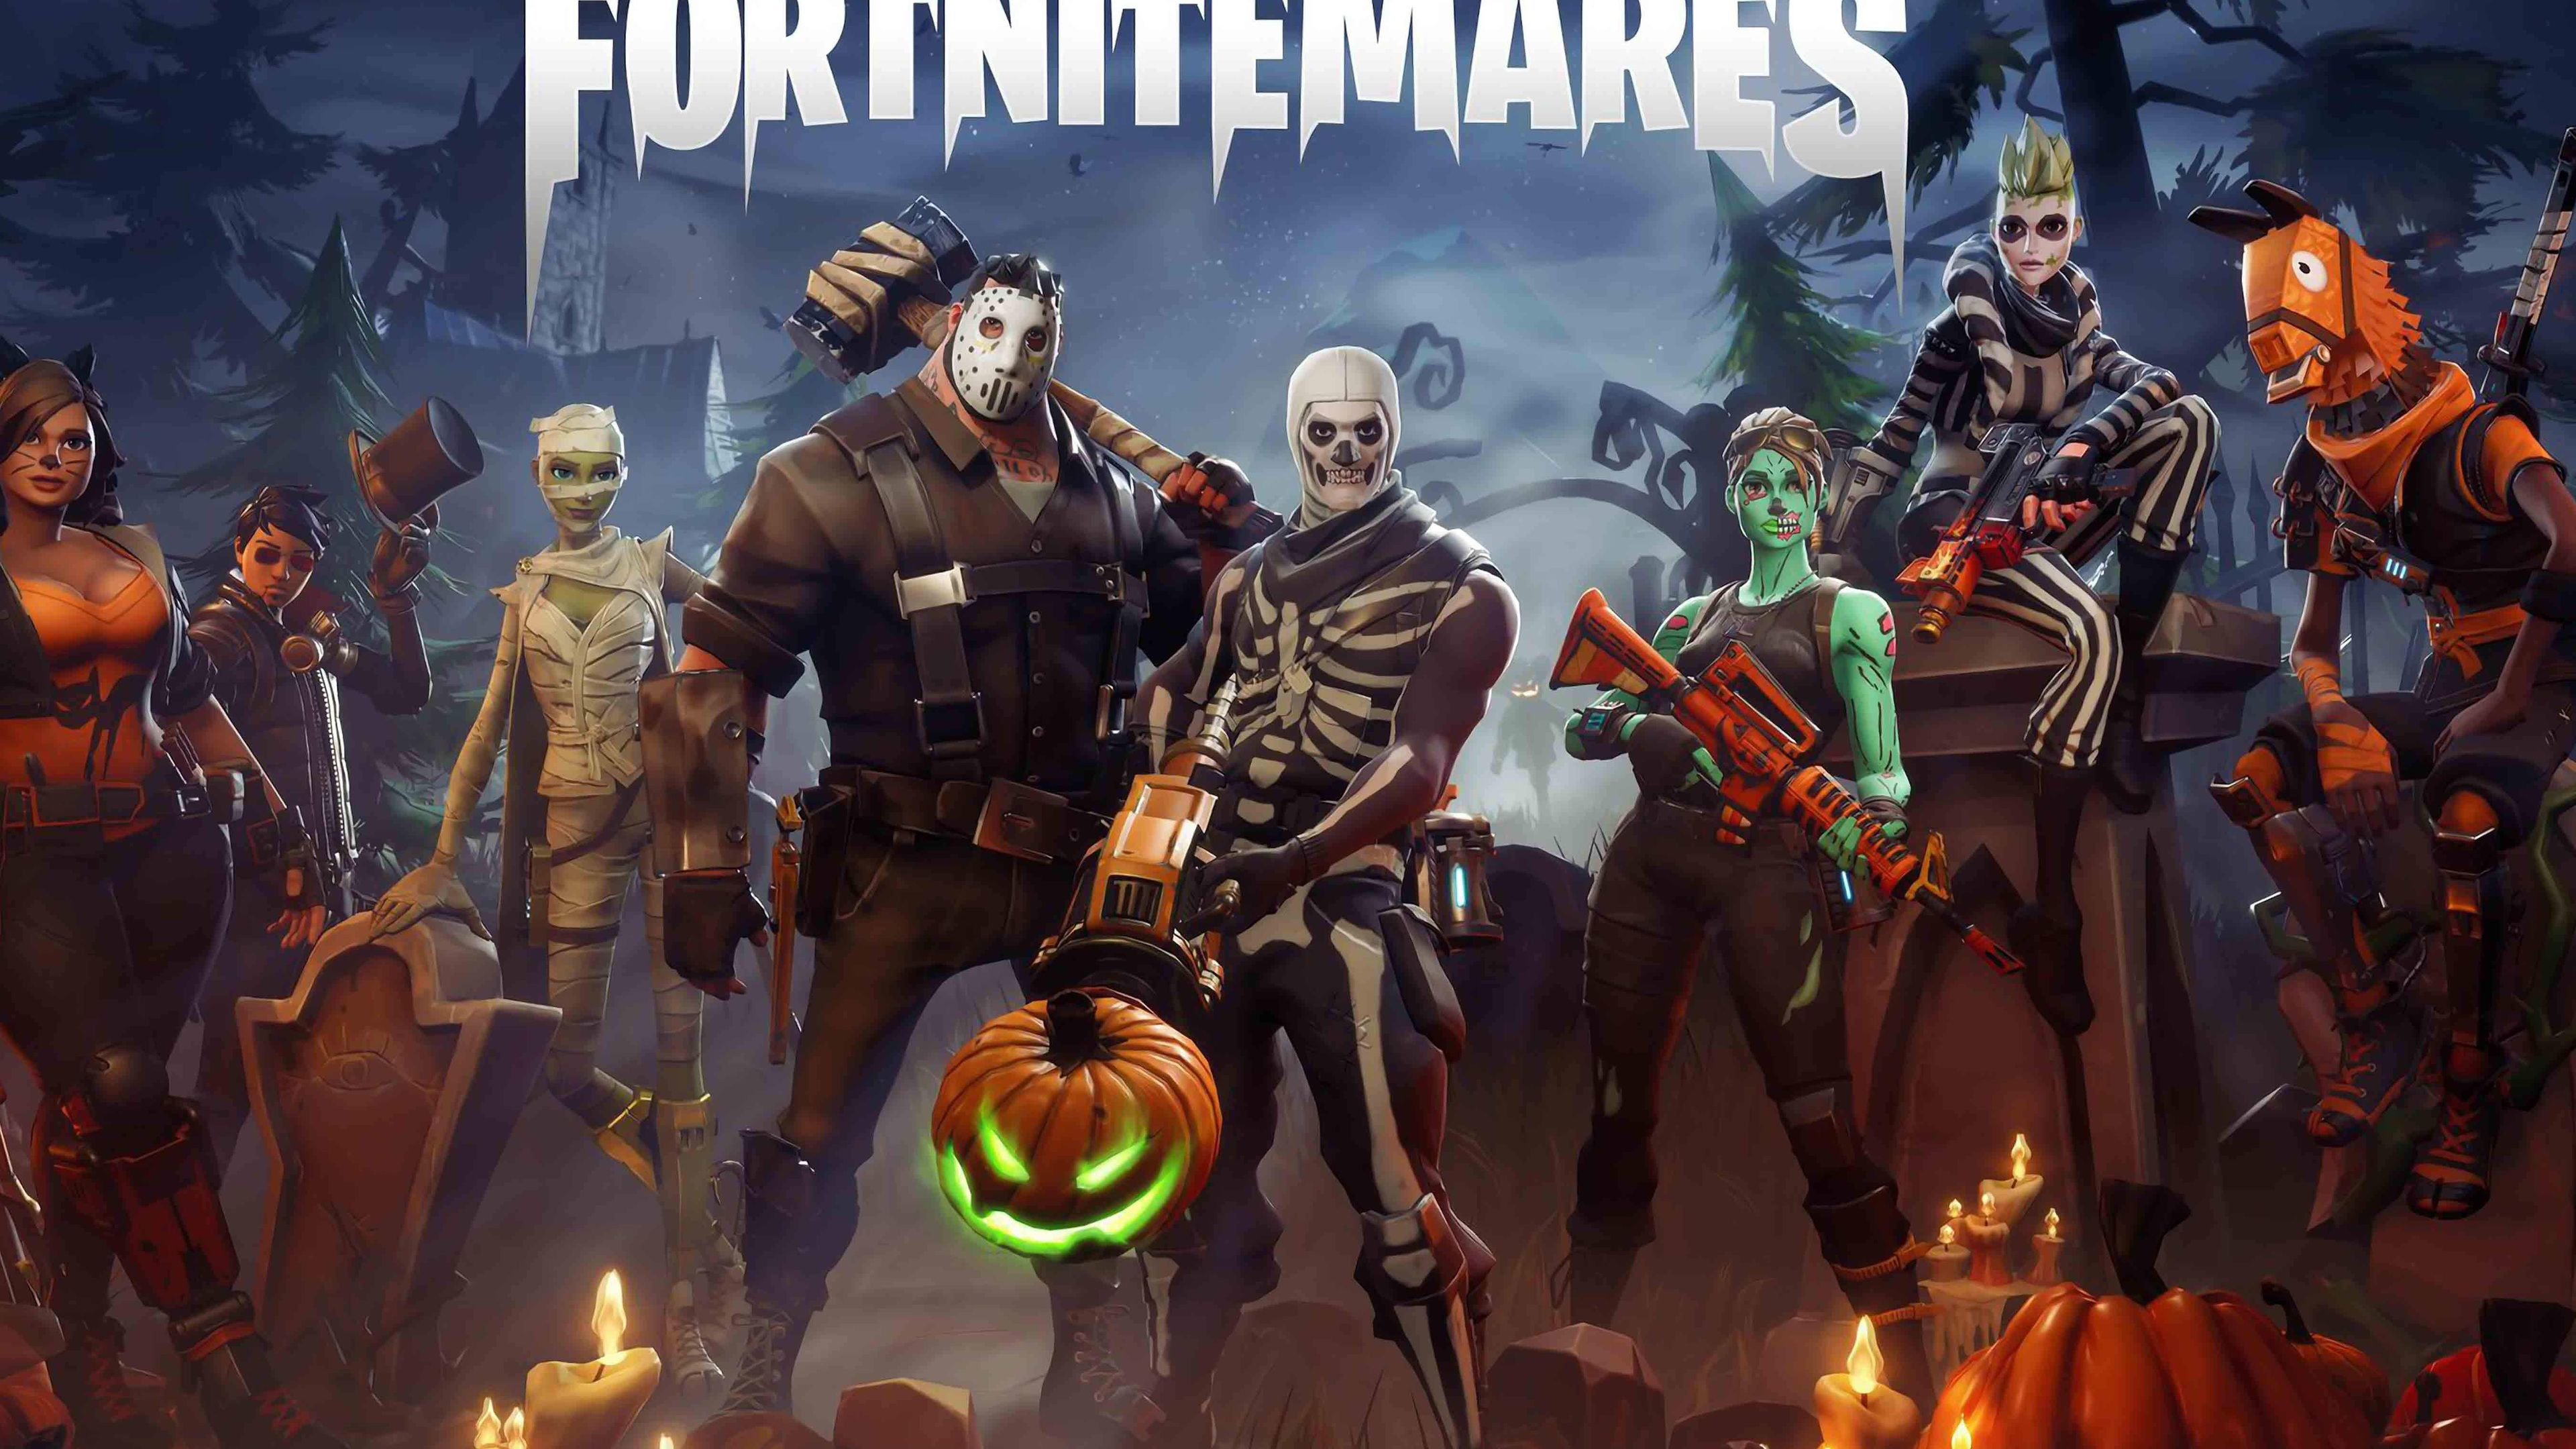 Fortnite Mares Ps Games Wallpapers Hd Wallpapers Games Wallpapers Fortnite Wallpapers 5k Wallpapers 4k Wallpapers Halloween Update Fortnite Halloween Sale